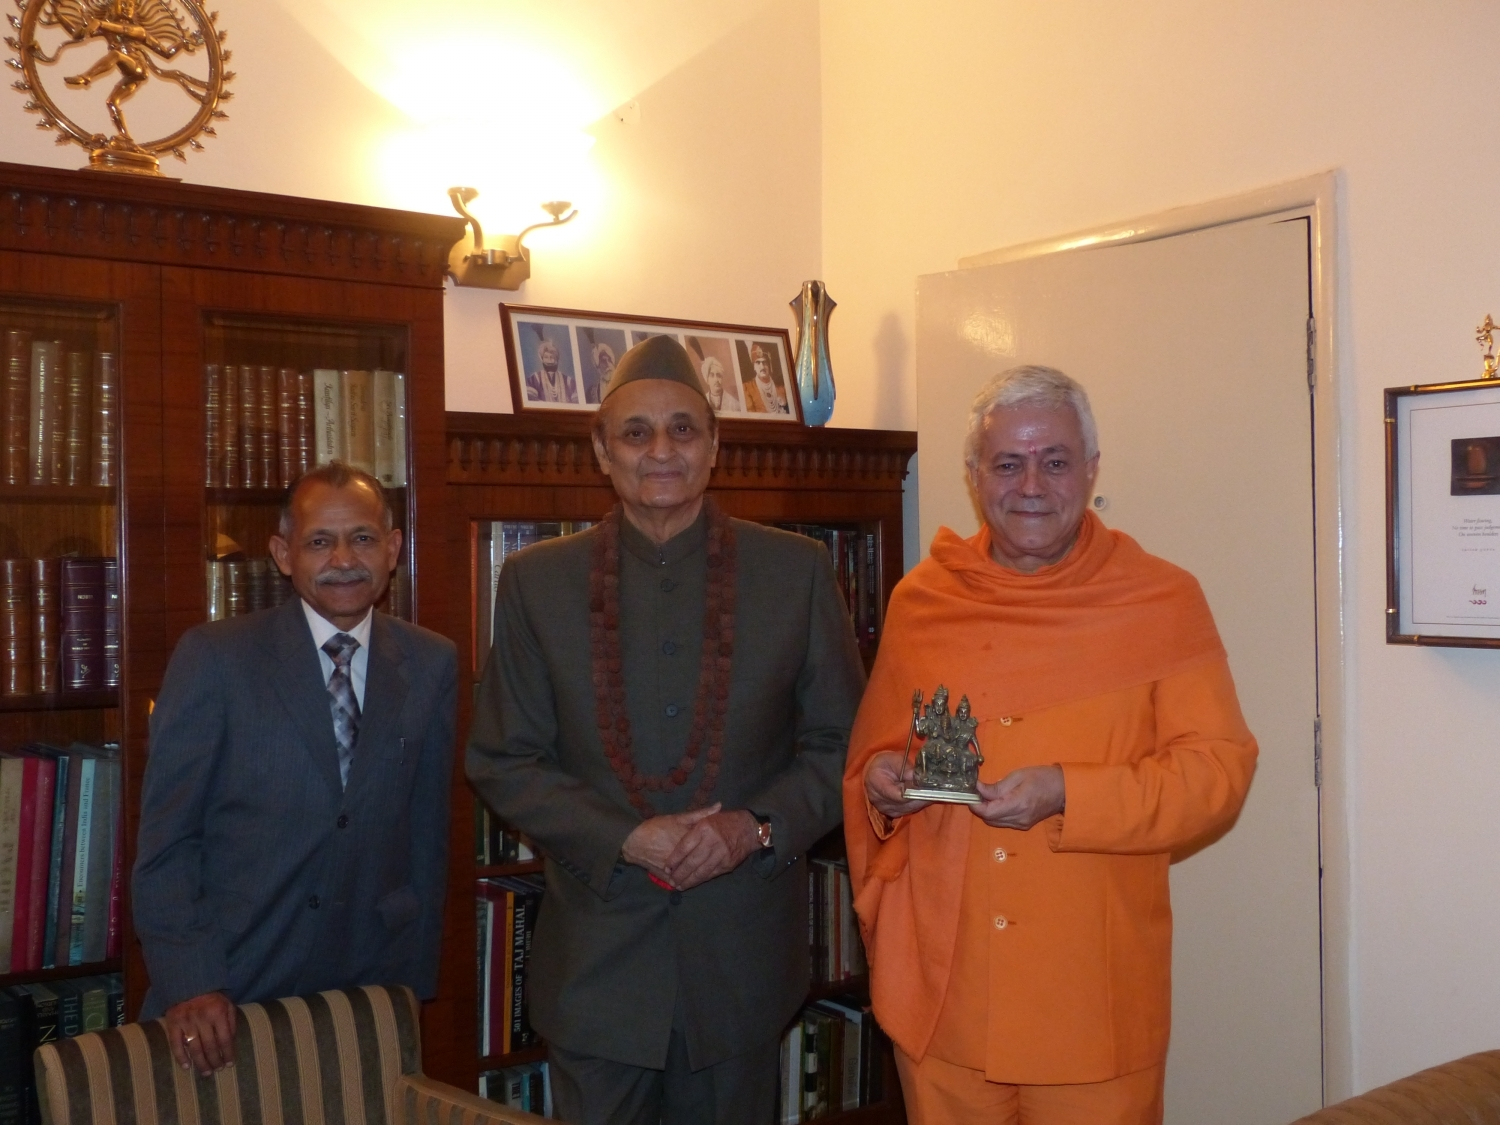 With Dr. Ravi P. Singh, Secretary General of the Quality Council of India - New Dillí